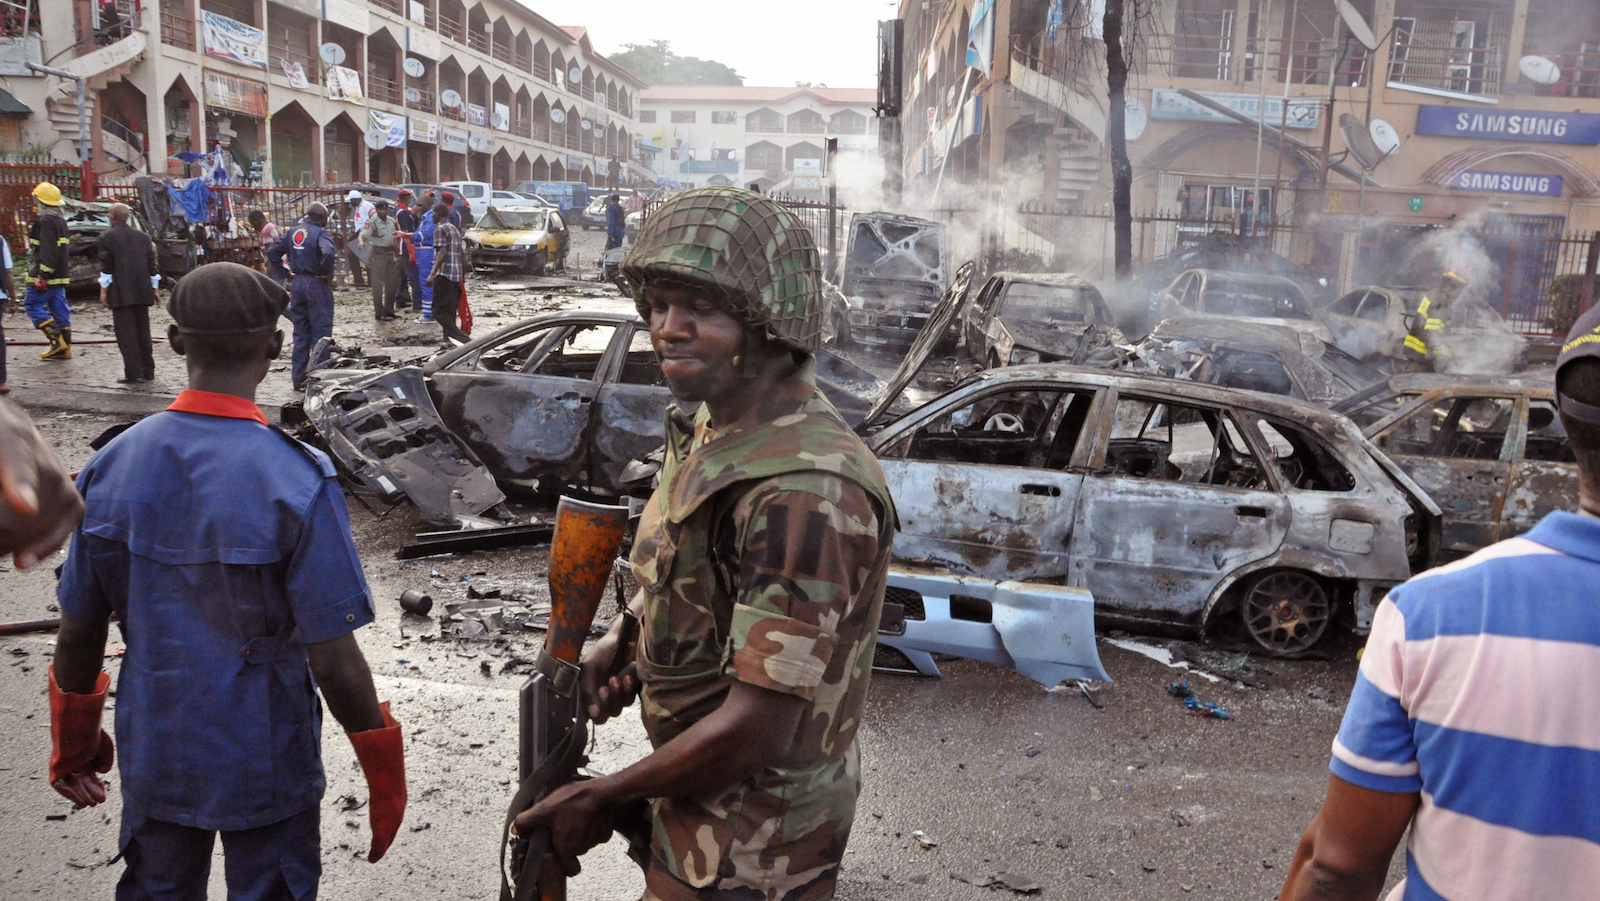 A Nigerian soldier,  center, walks, at the scene of an explosion in Abuja, Nigeria on Wednesday, June 25, 2014. (Olamikan Gbemiga/AP)